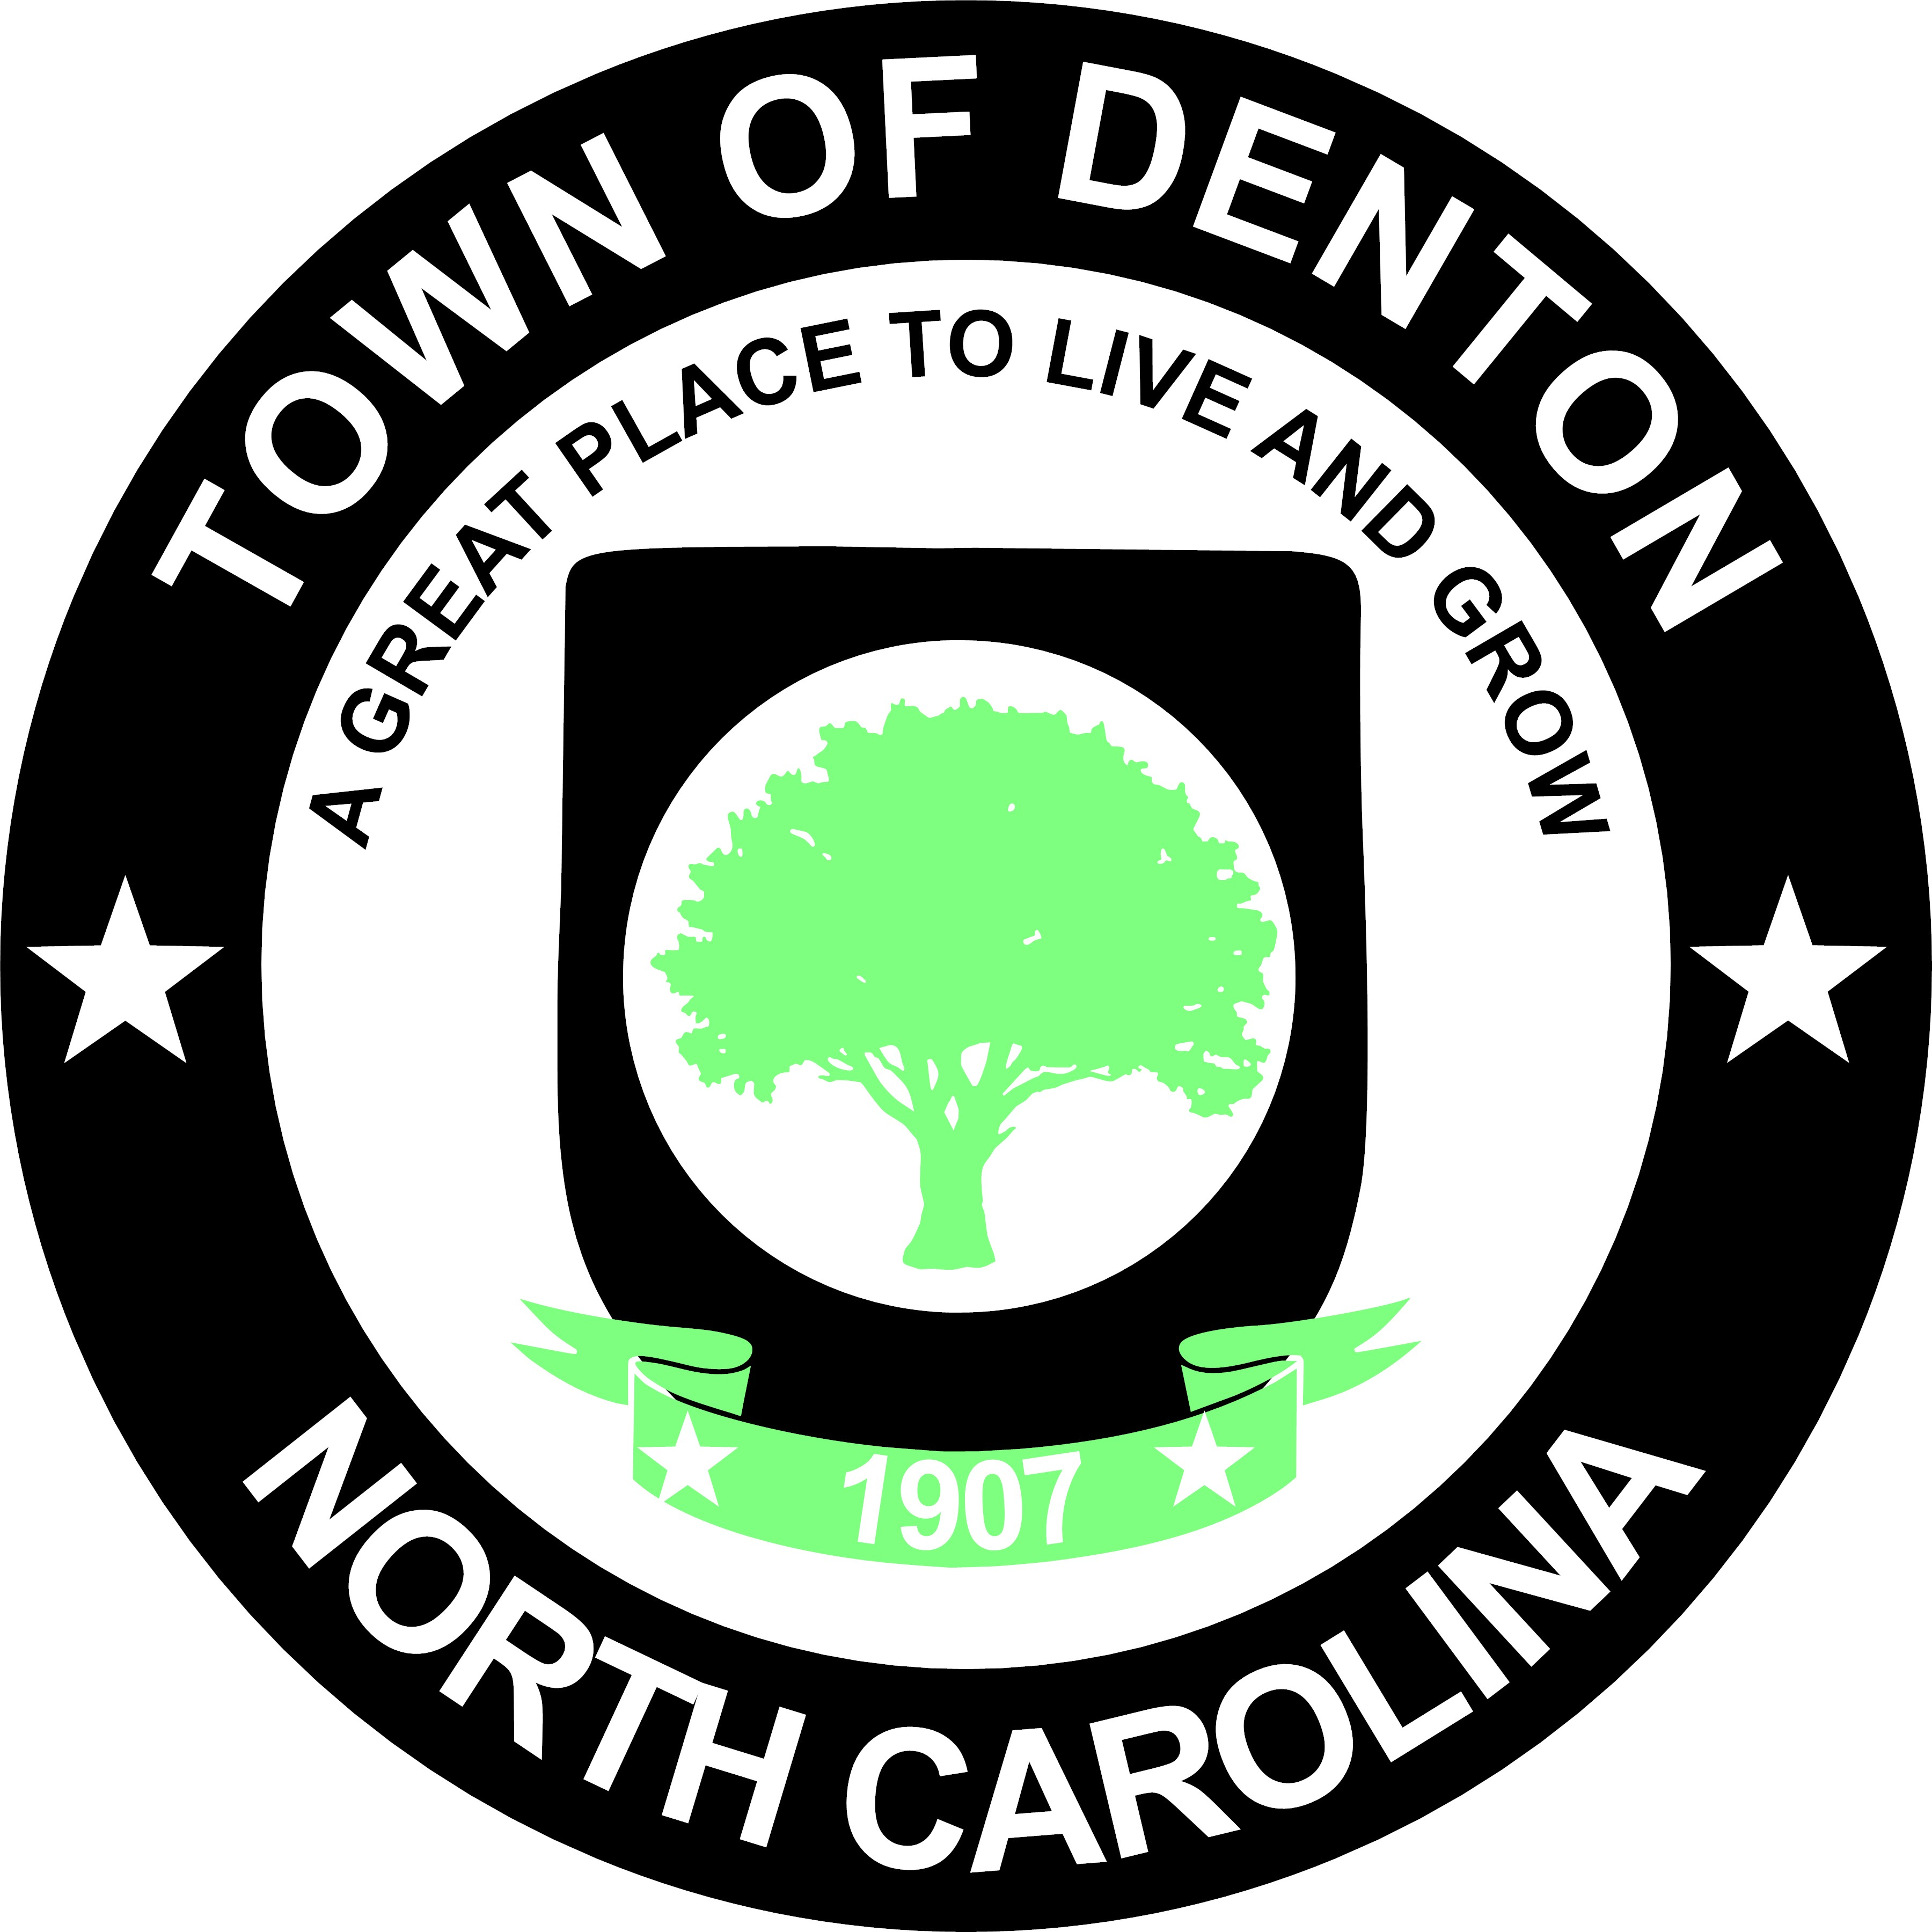 TOWN OF DENTON SEAL 2019